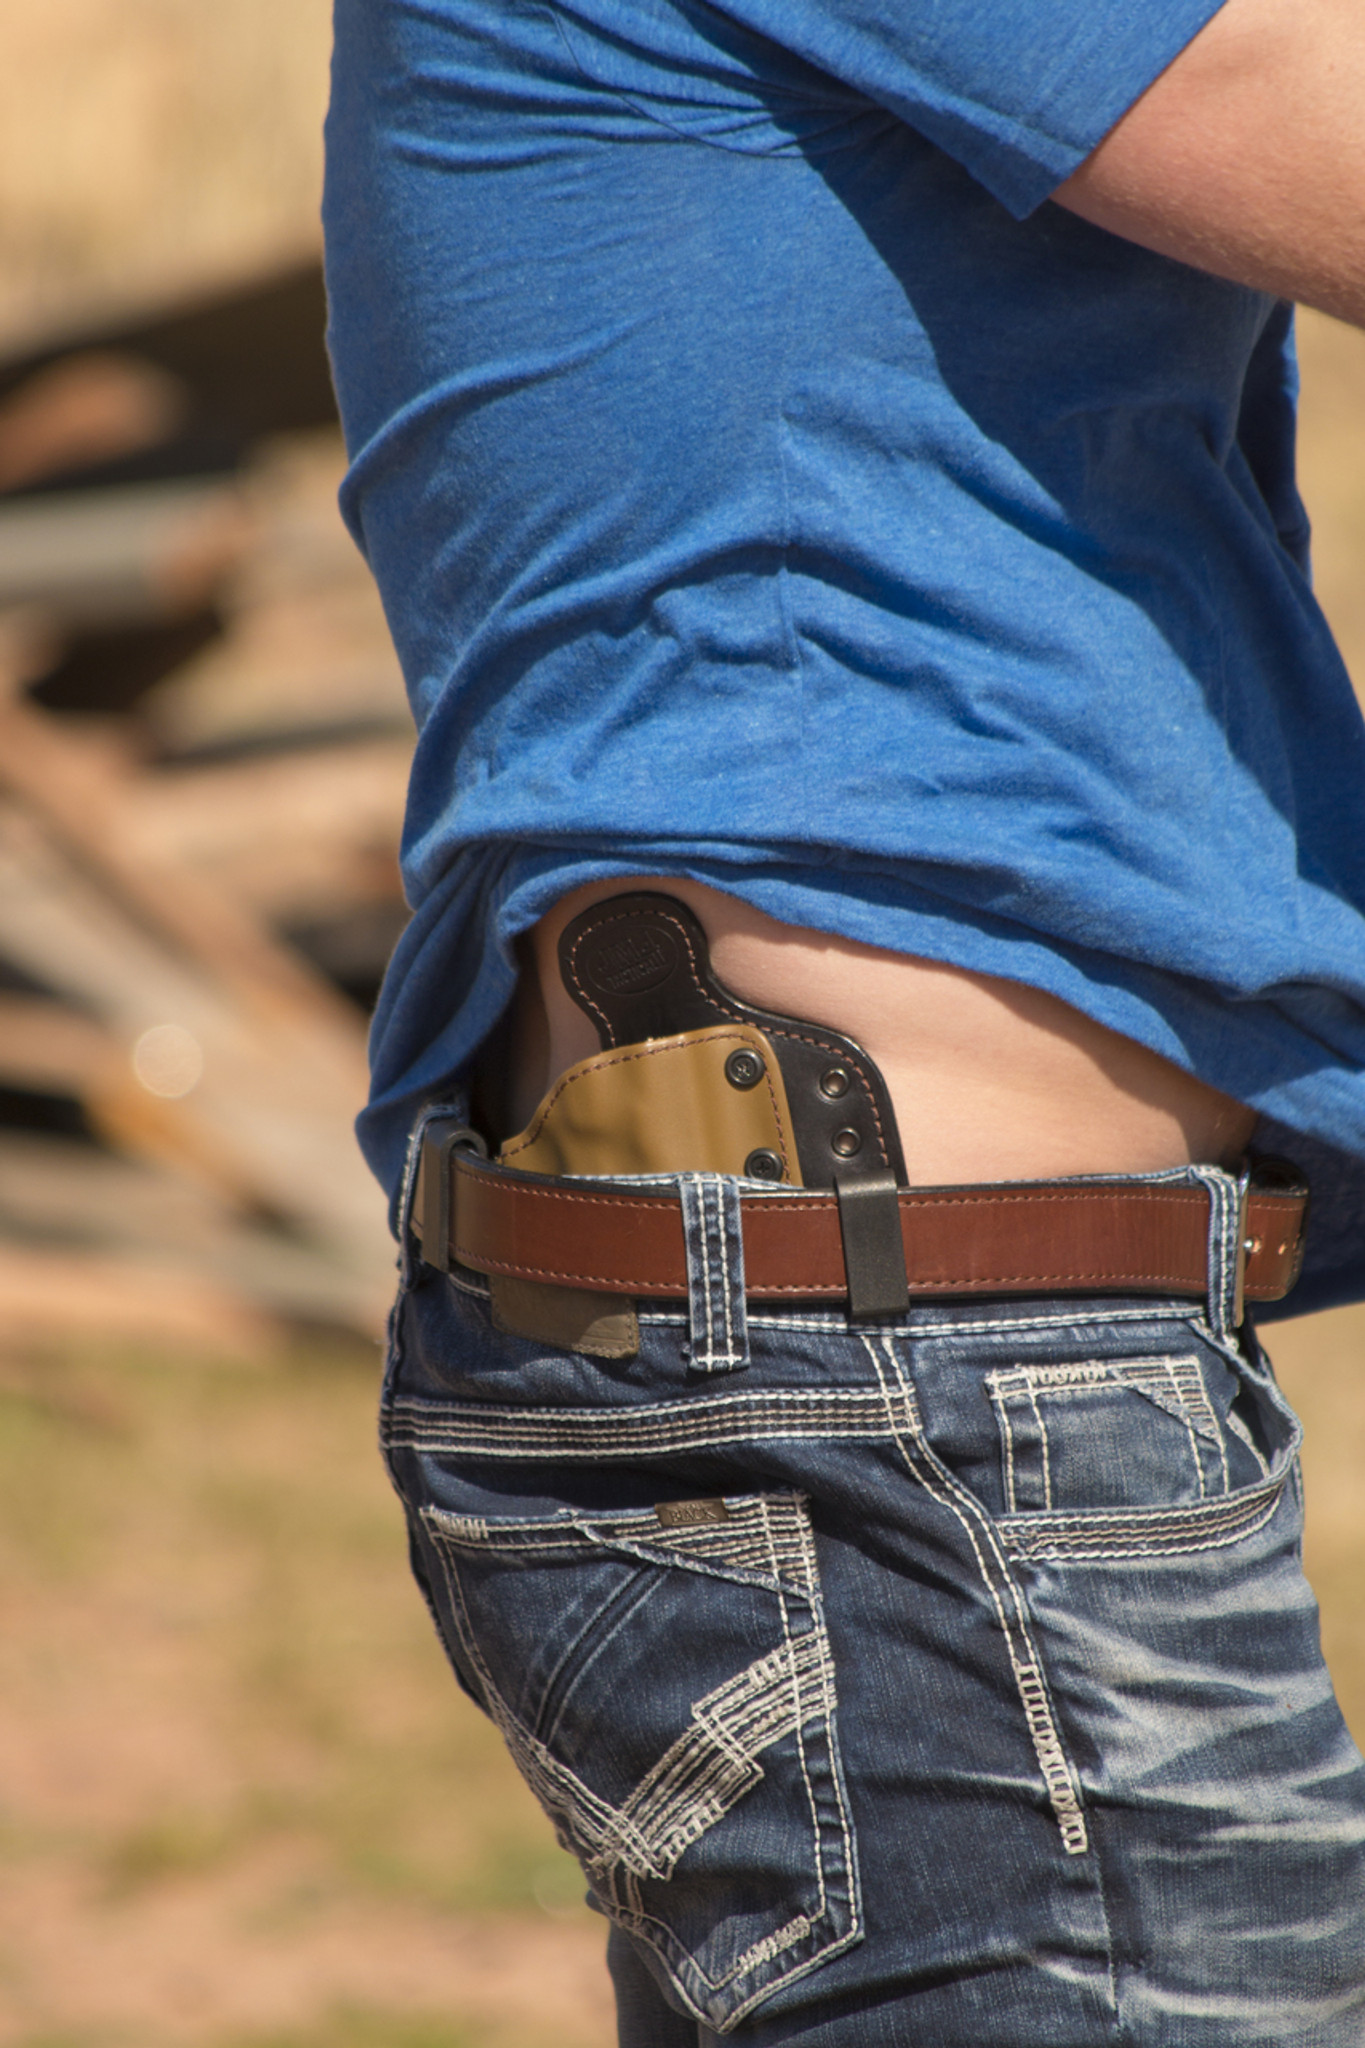 Introducing The New Jm4 Tactical Relic Hybrid Holster